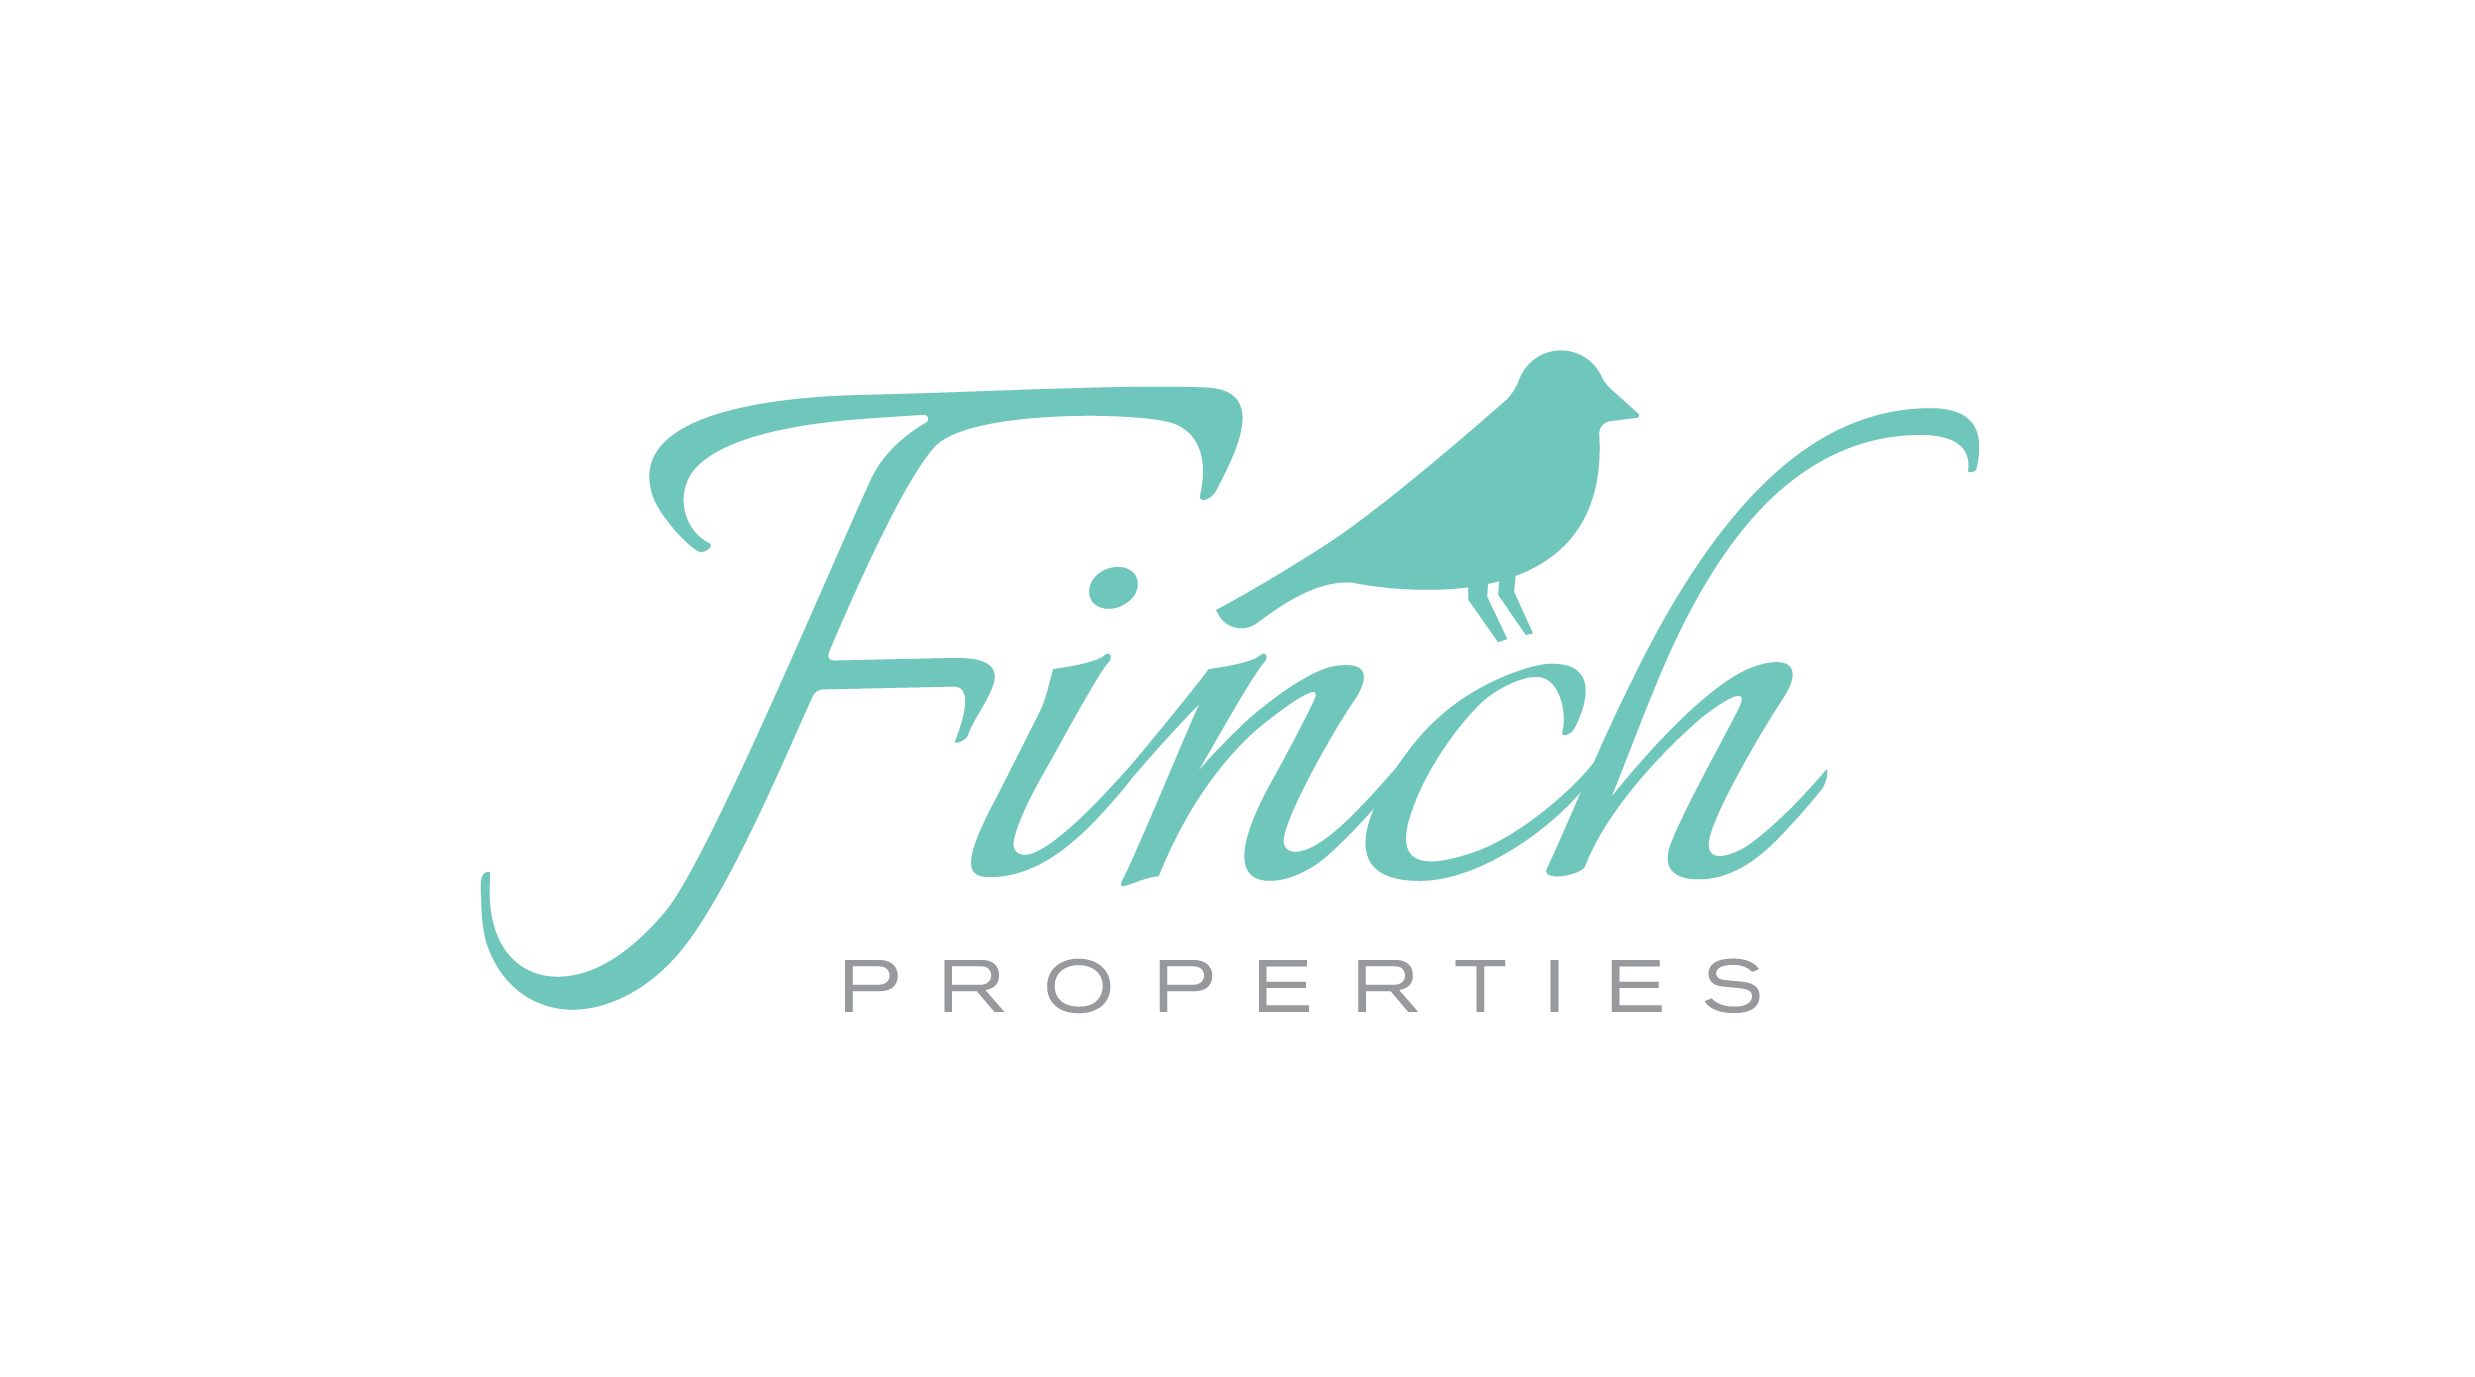 Finch Properties